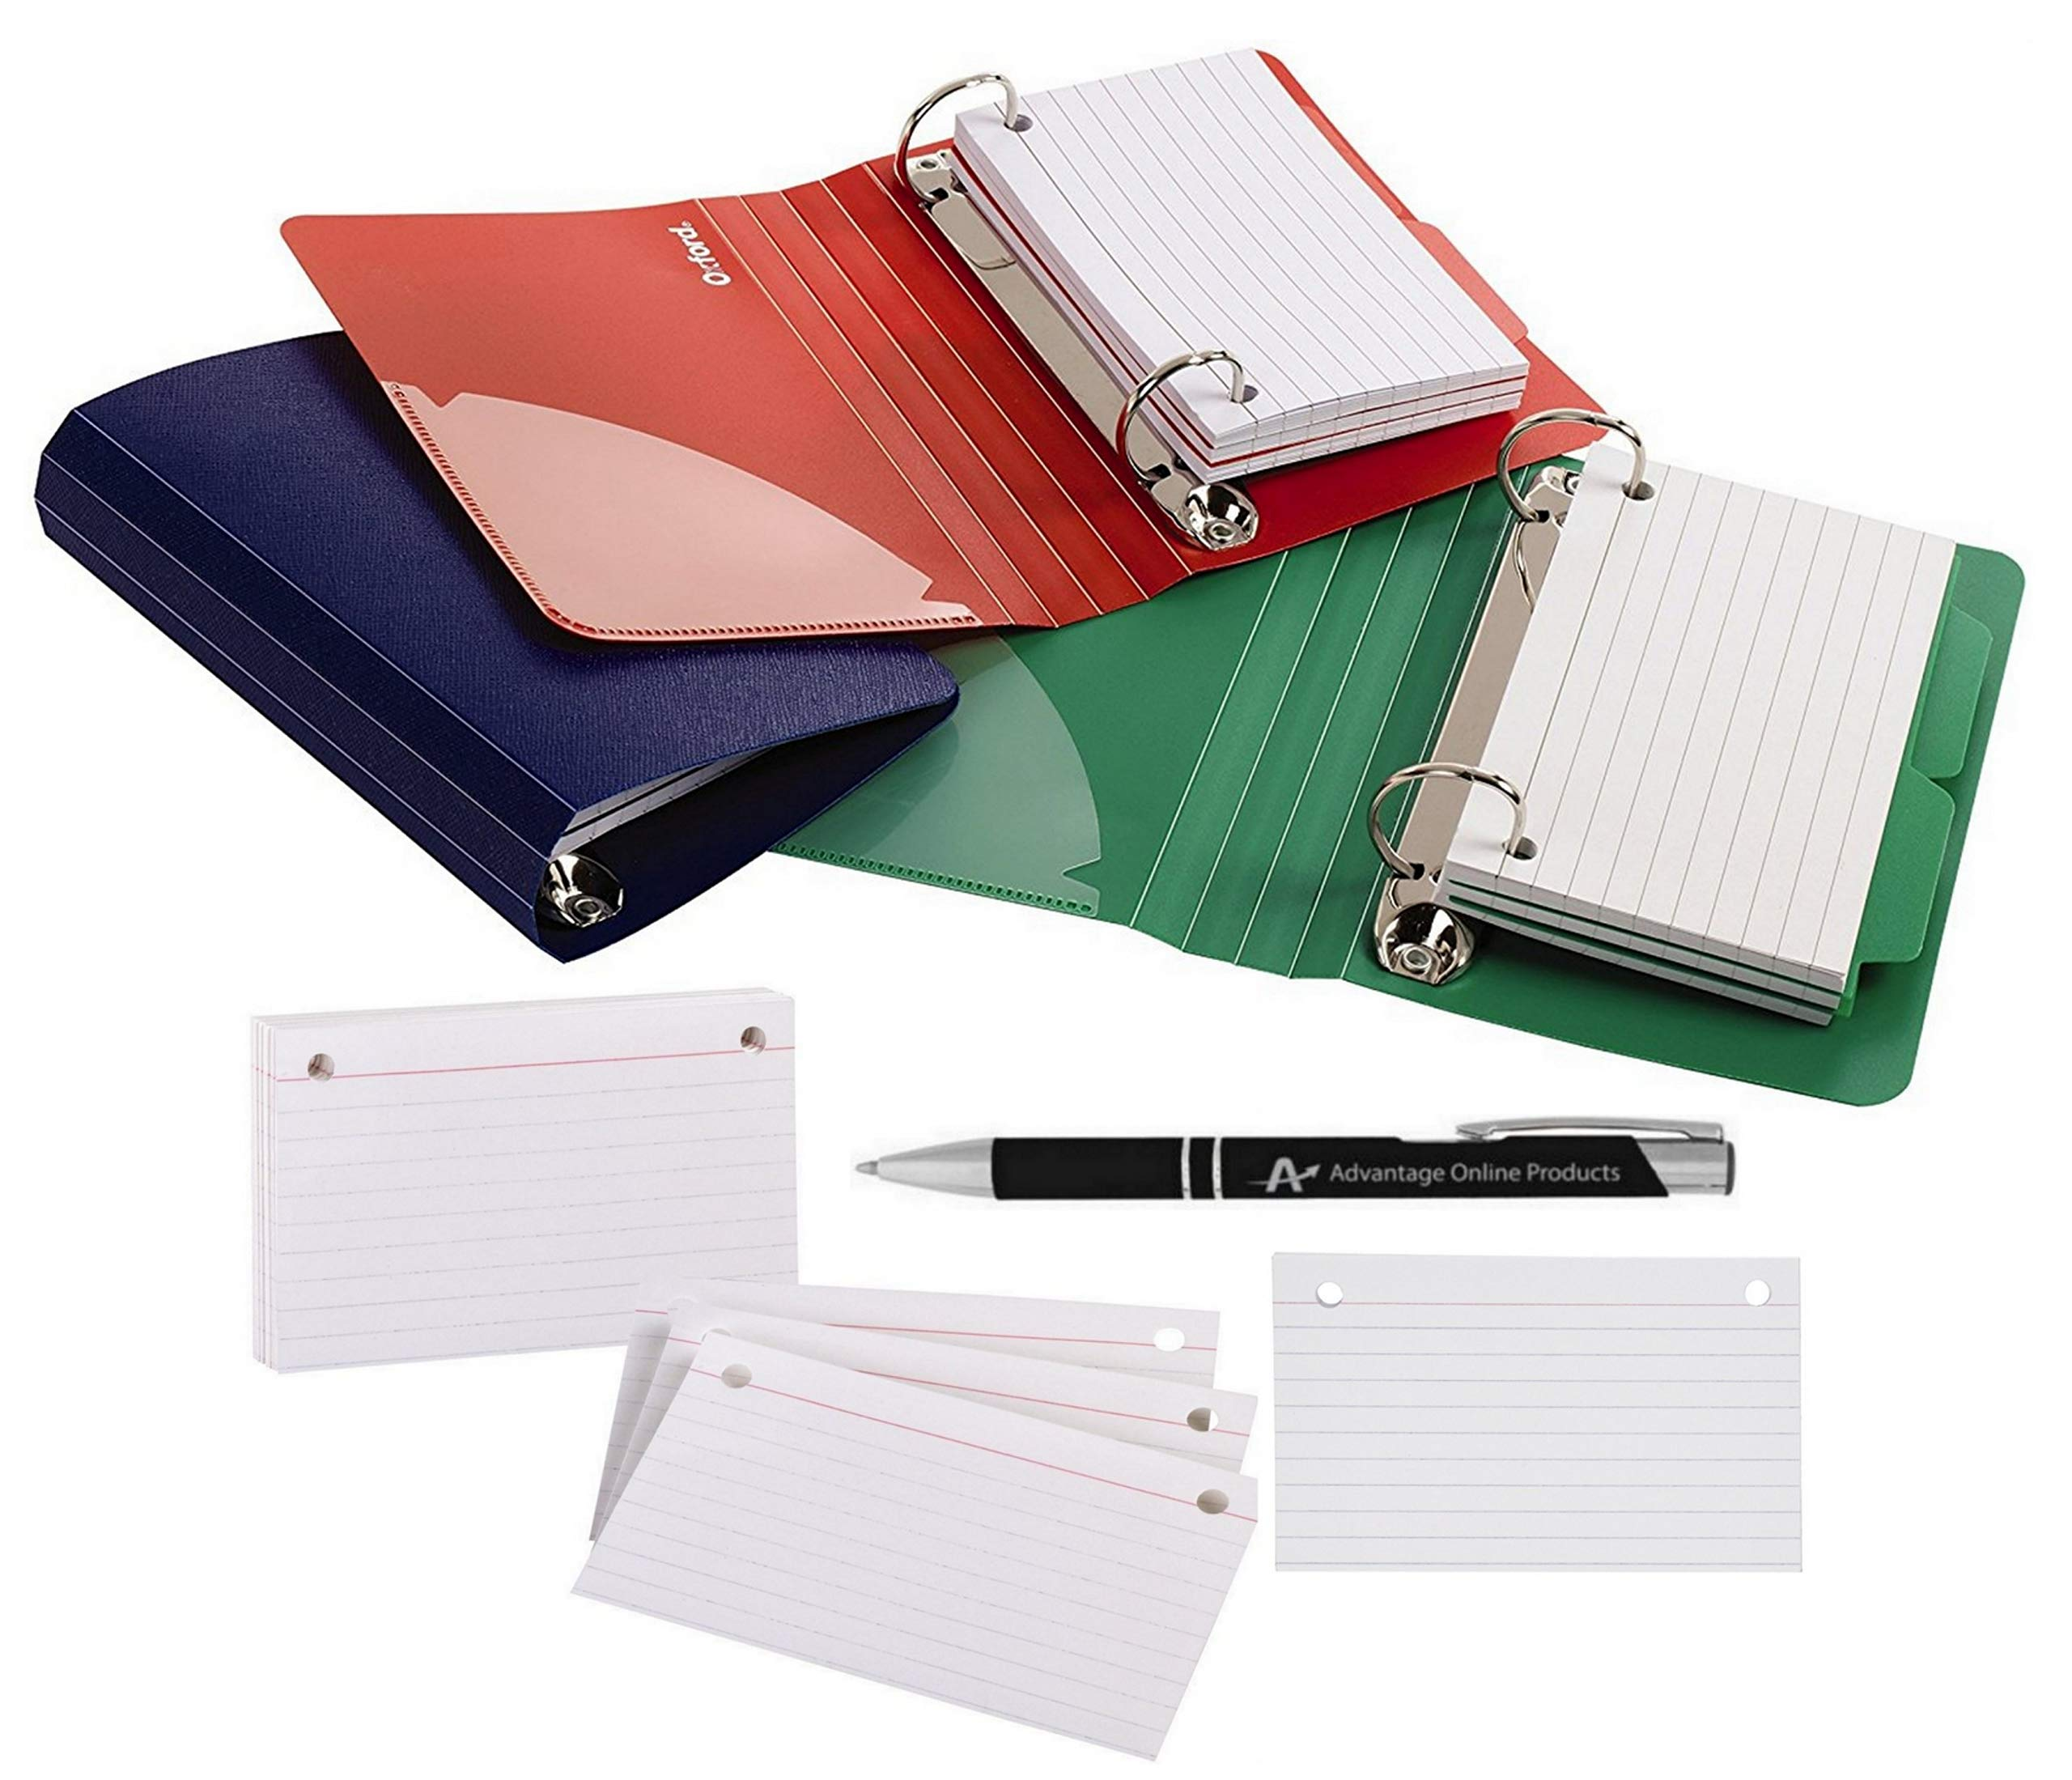 Value Bundle of 3 Oxford Poly Index Card Binders, 3 x 5 Inches, Includes 50 Pre-Punched Cards (73569) and 3 Index Card Refills (07351) Plus Bonus AdvantageOP Custom Pen